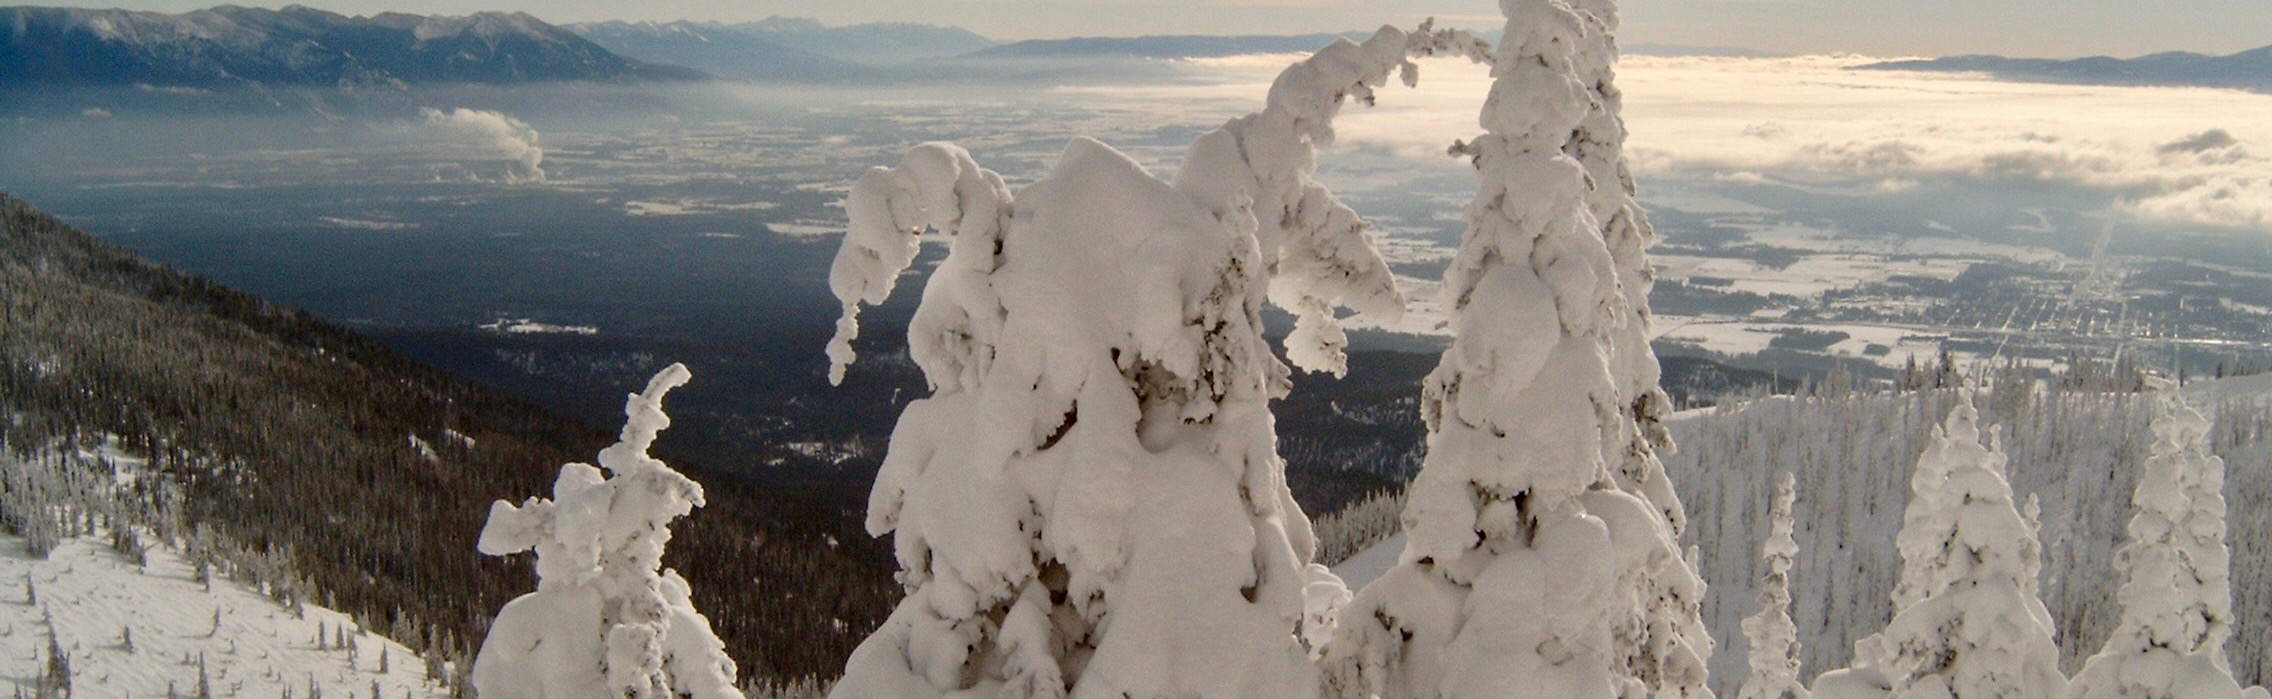 Snow ghosts over Whitefish townsite